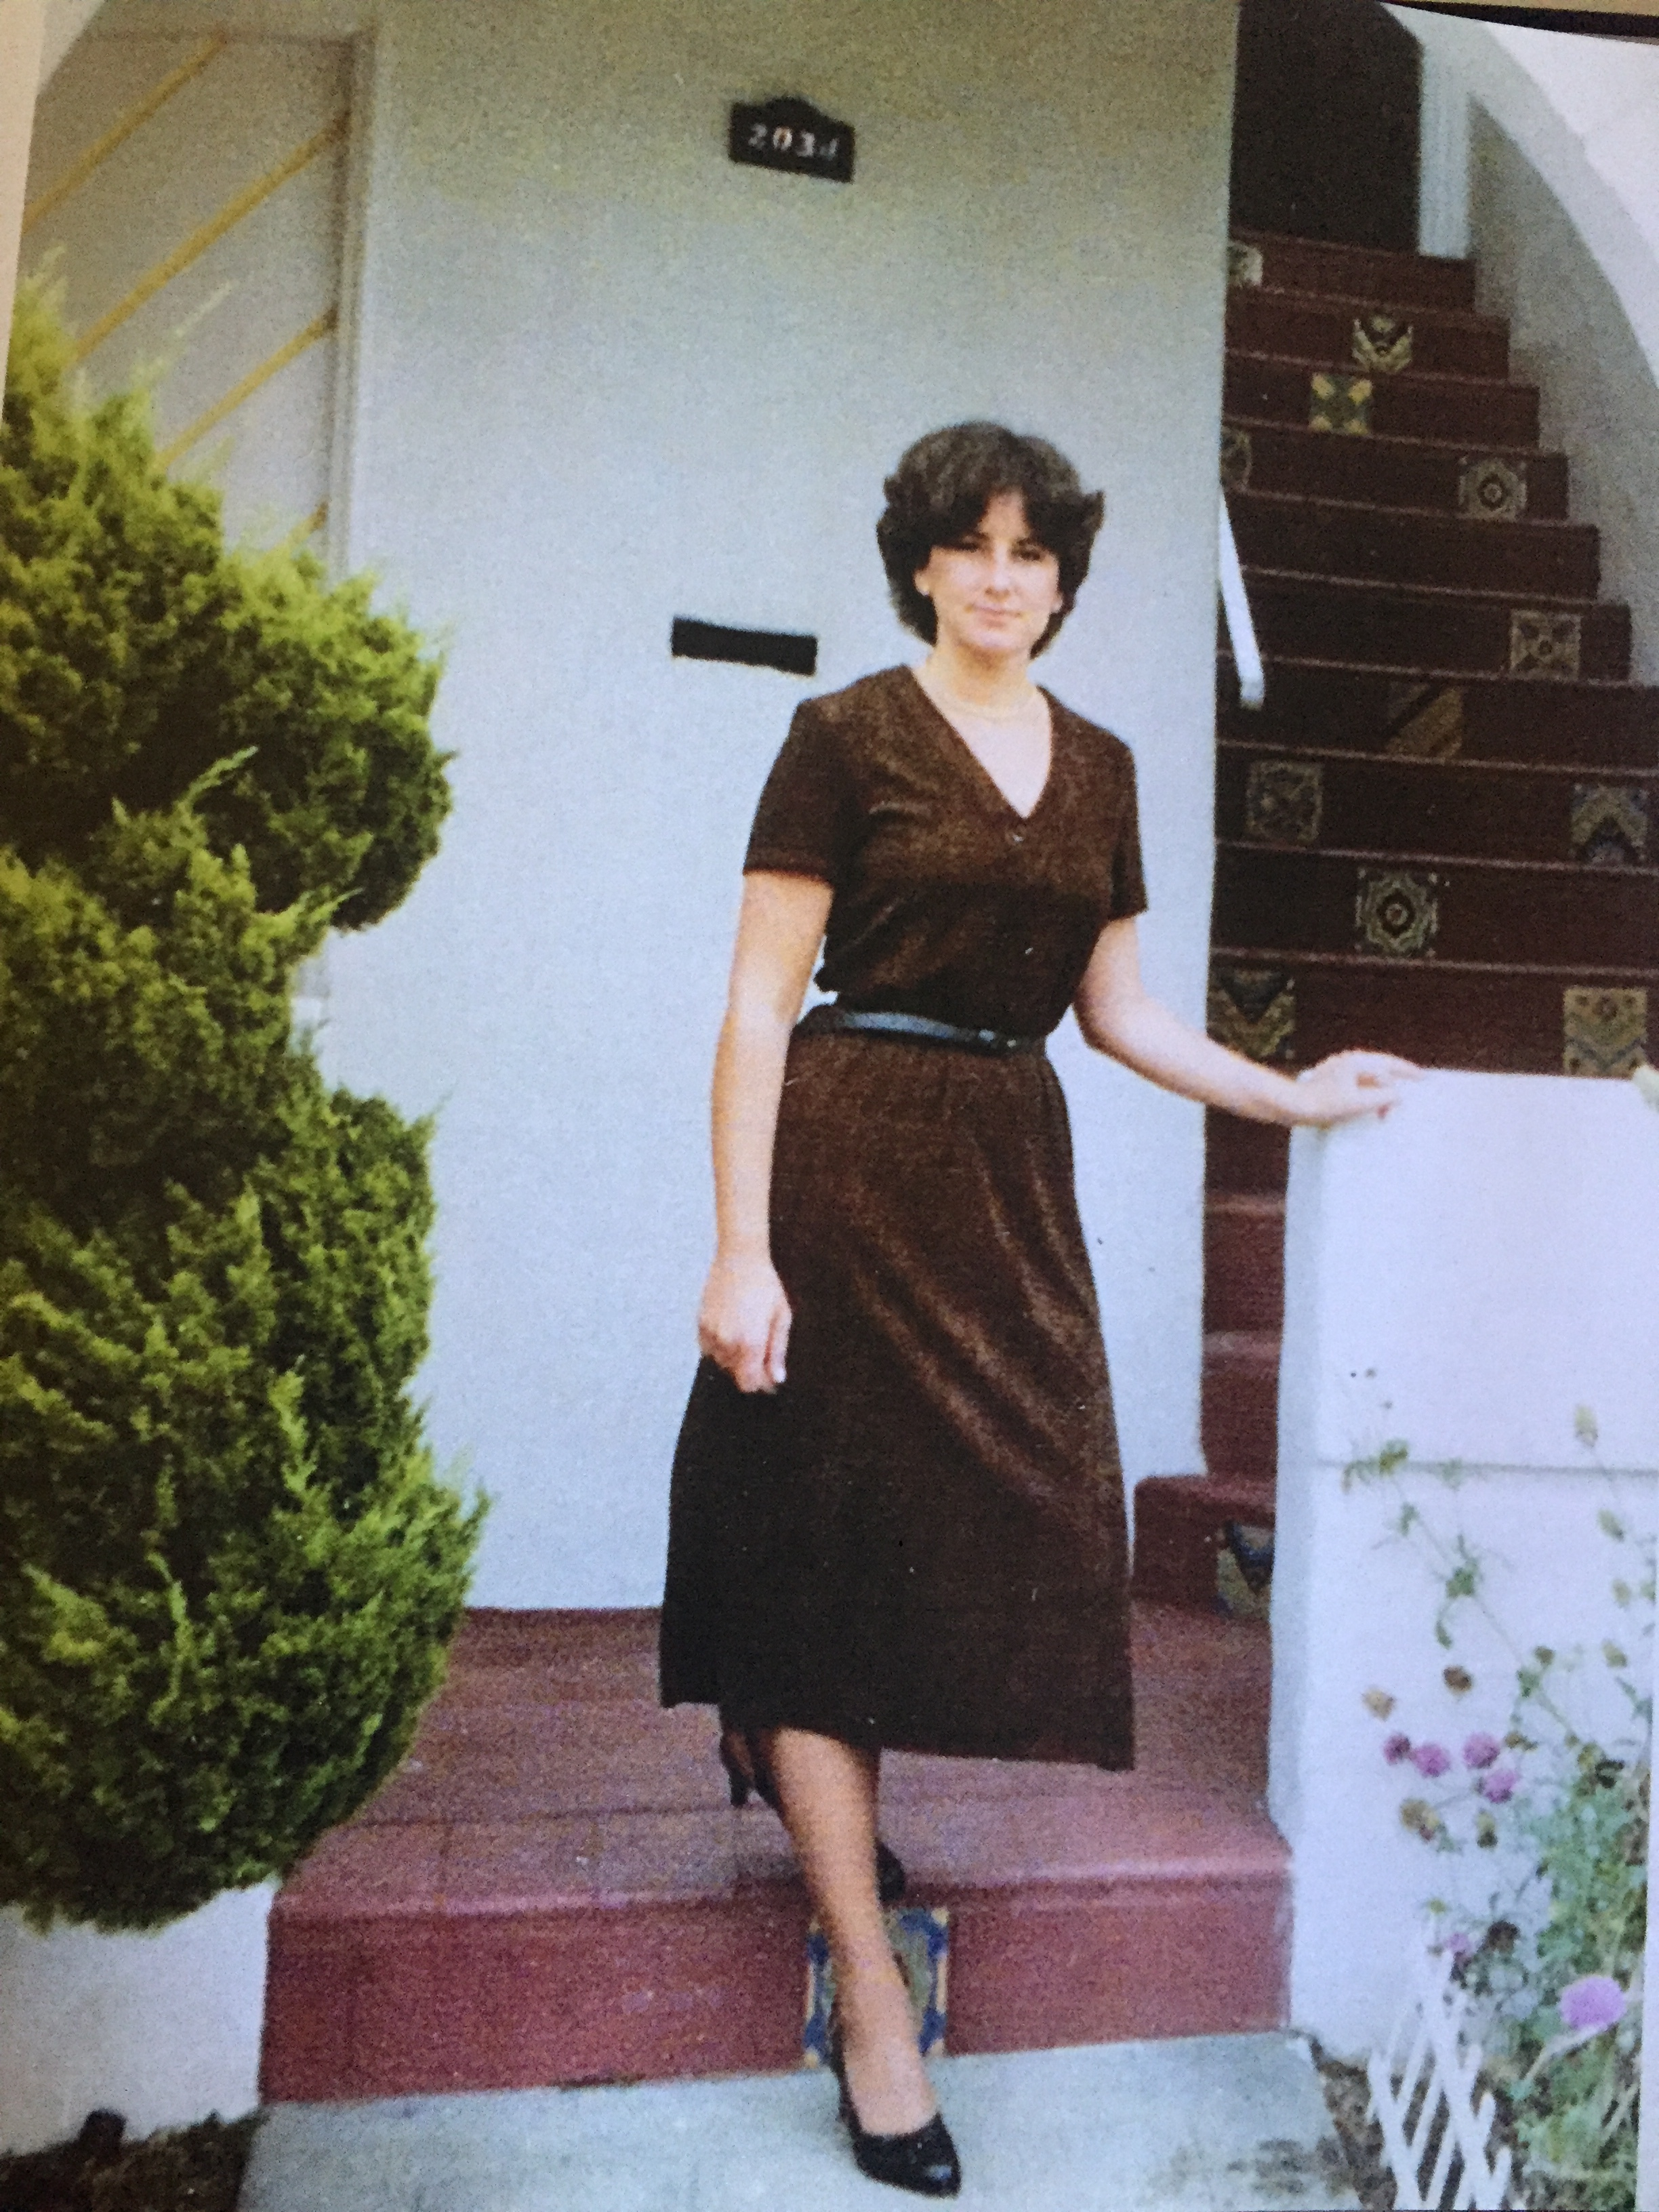 Sue on her way to work in 1979 around the time she moved to the Bay Area and met her husband and partner, Alan Cooper.